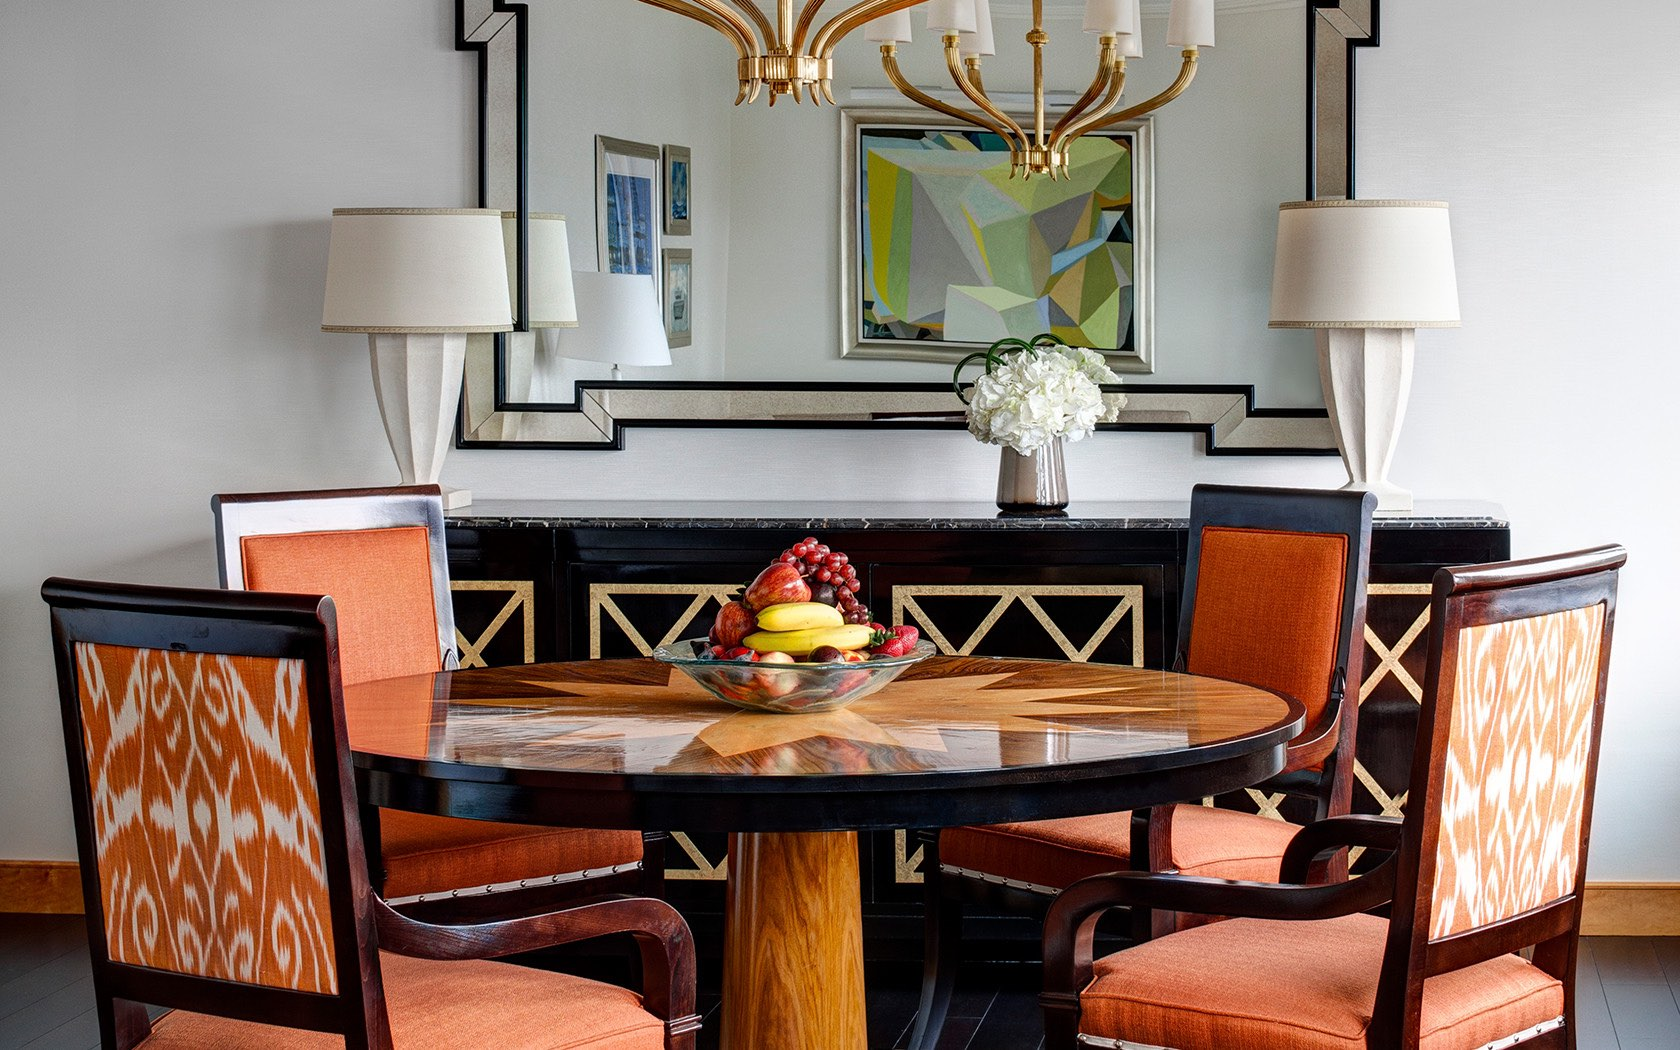 Wooden dining table with fruit arrangement   orange chairs. The Towers Rooms   Suites   NYC Hotels   Lotte New York Palace